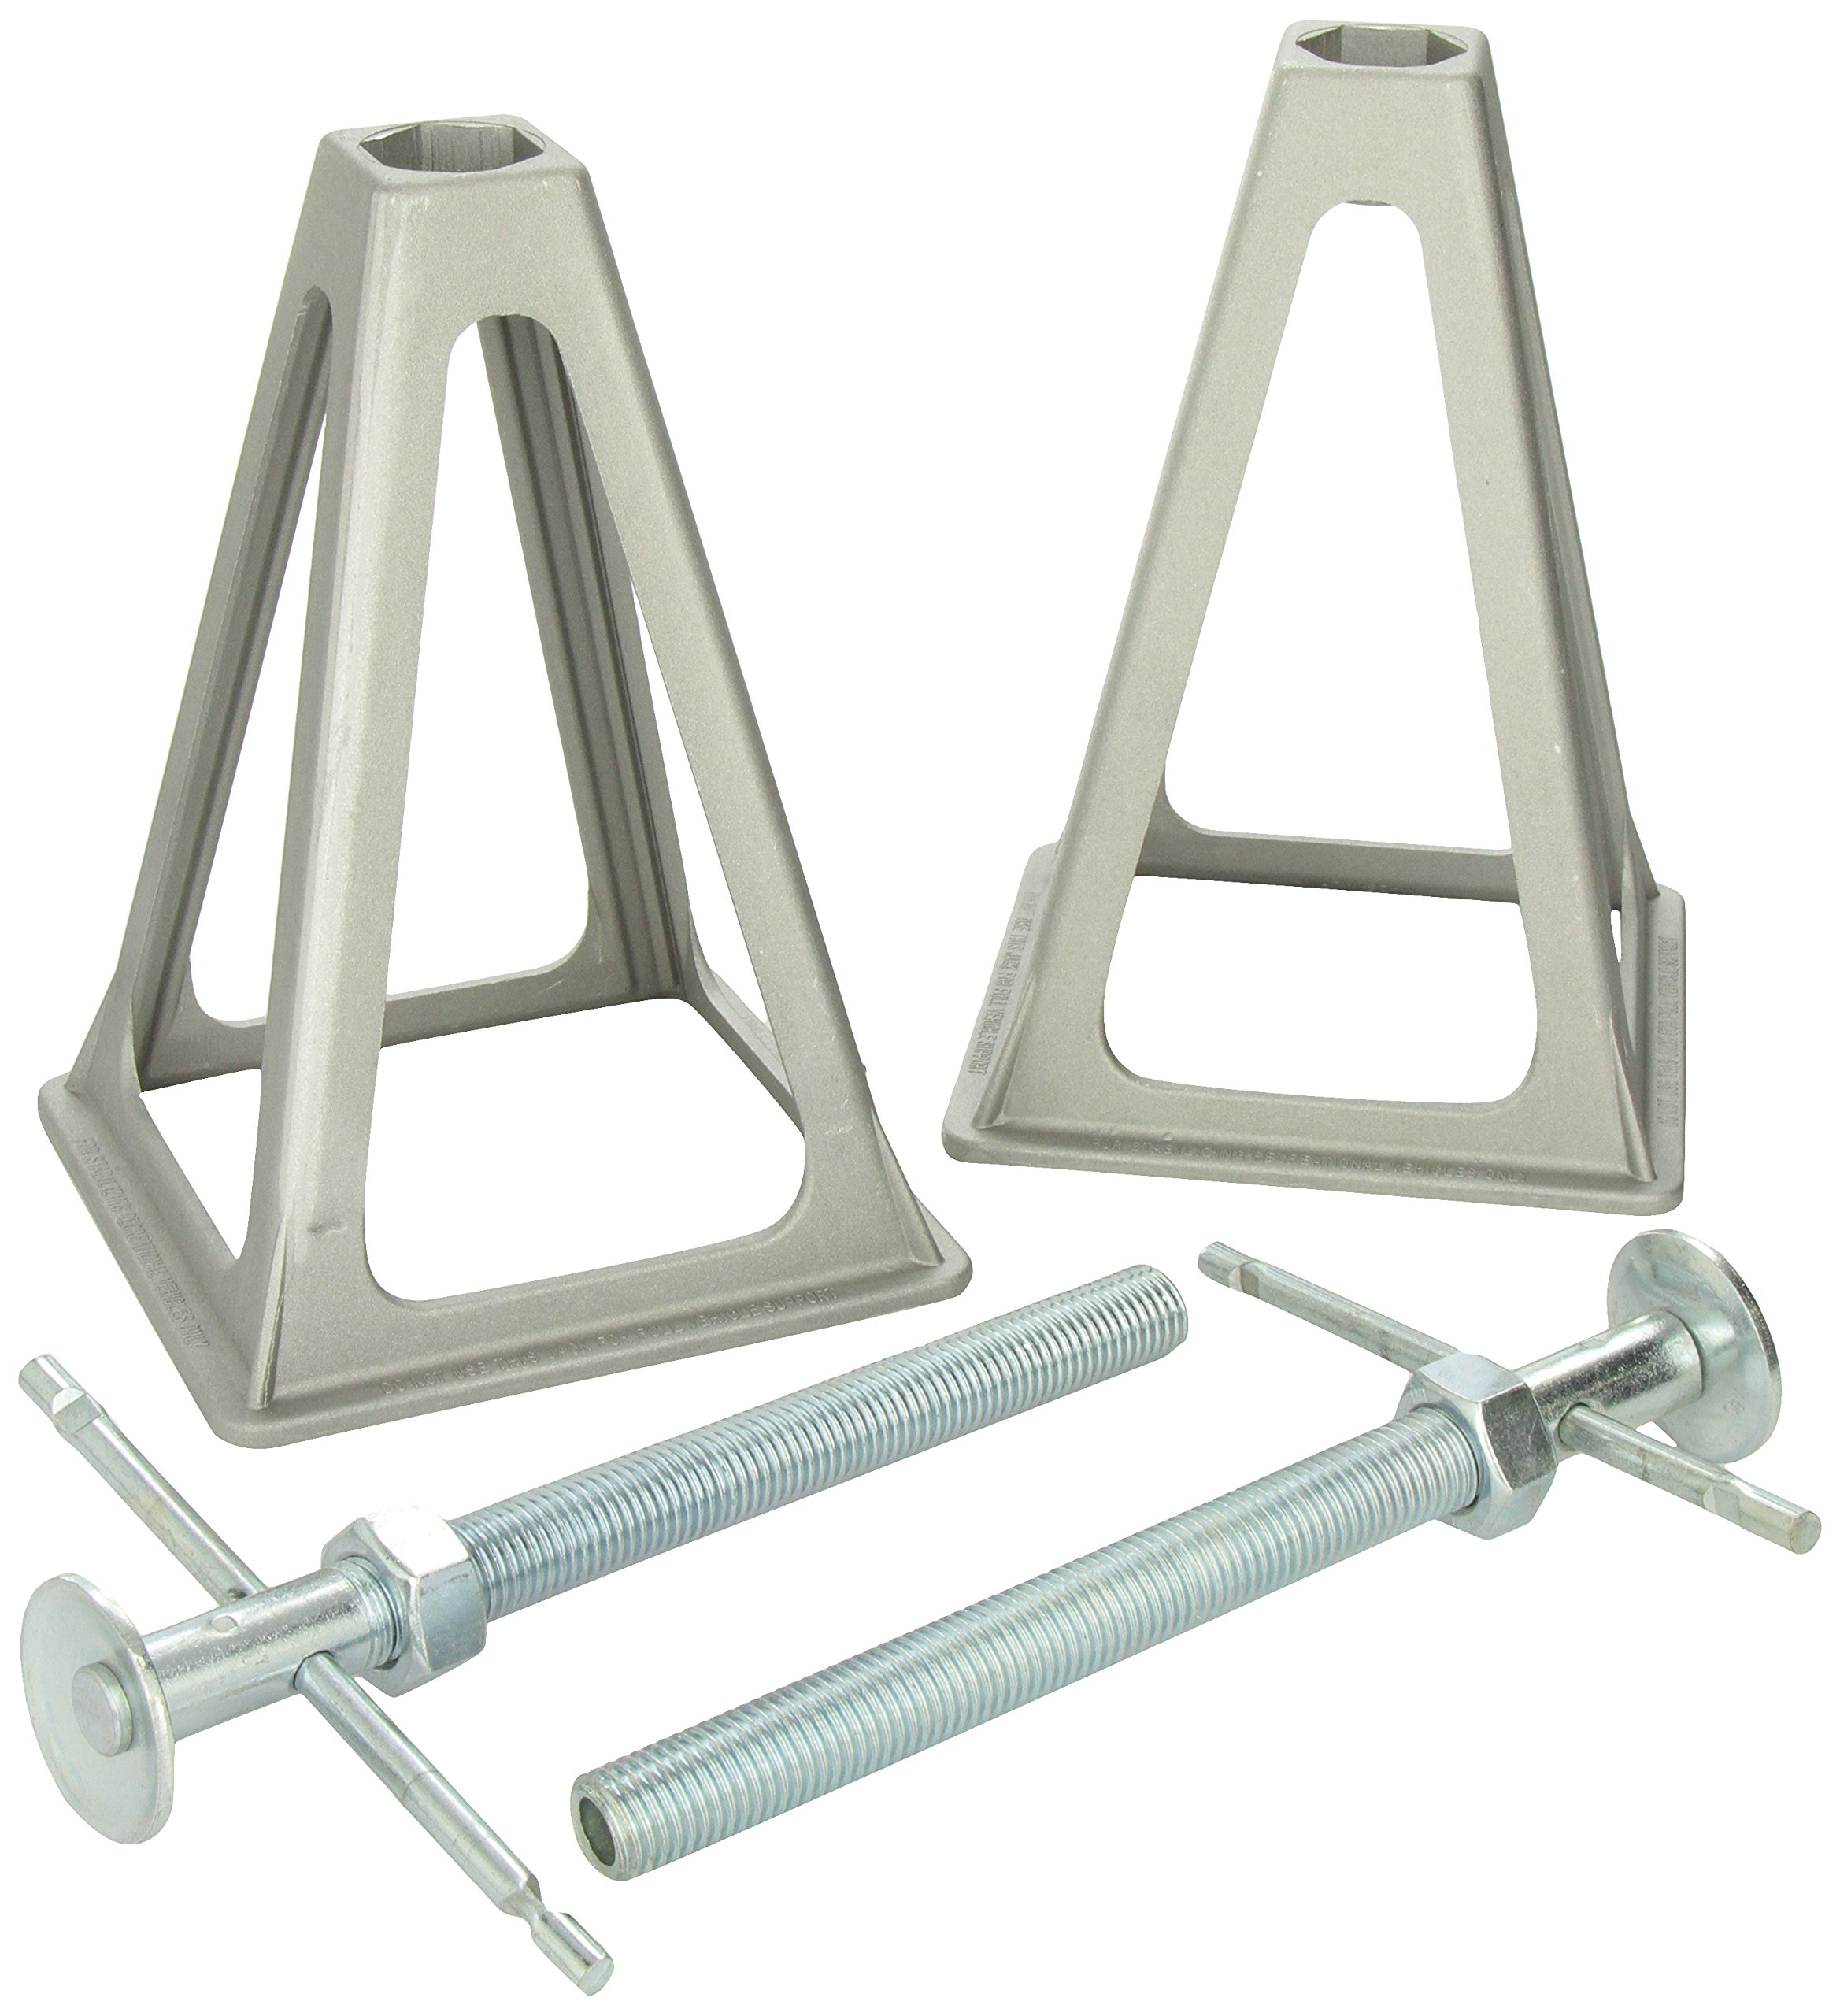 Ultra-Fab Products 48-979003 Ultra Stacker Jacks by Ultra-Fab Products